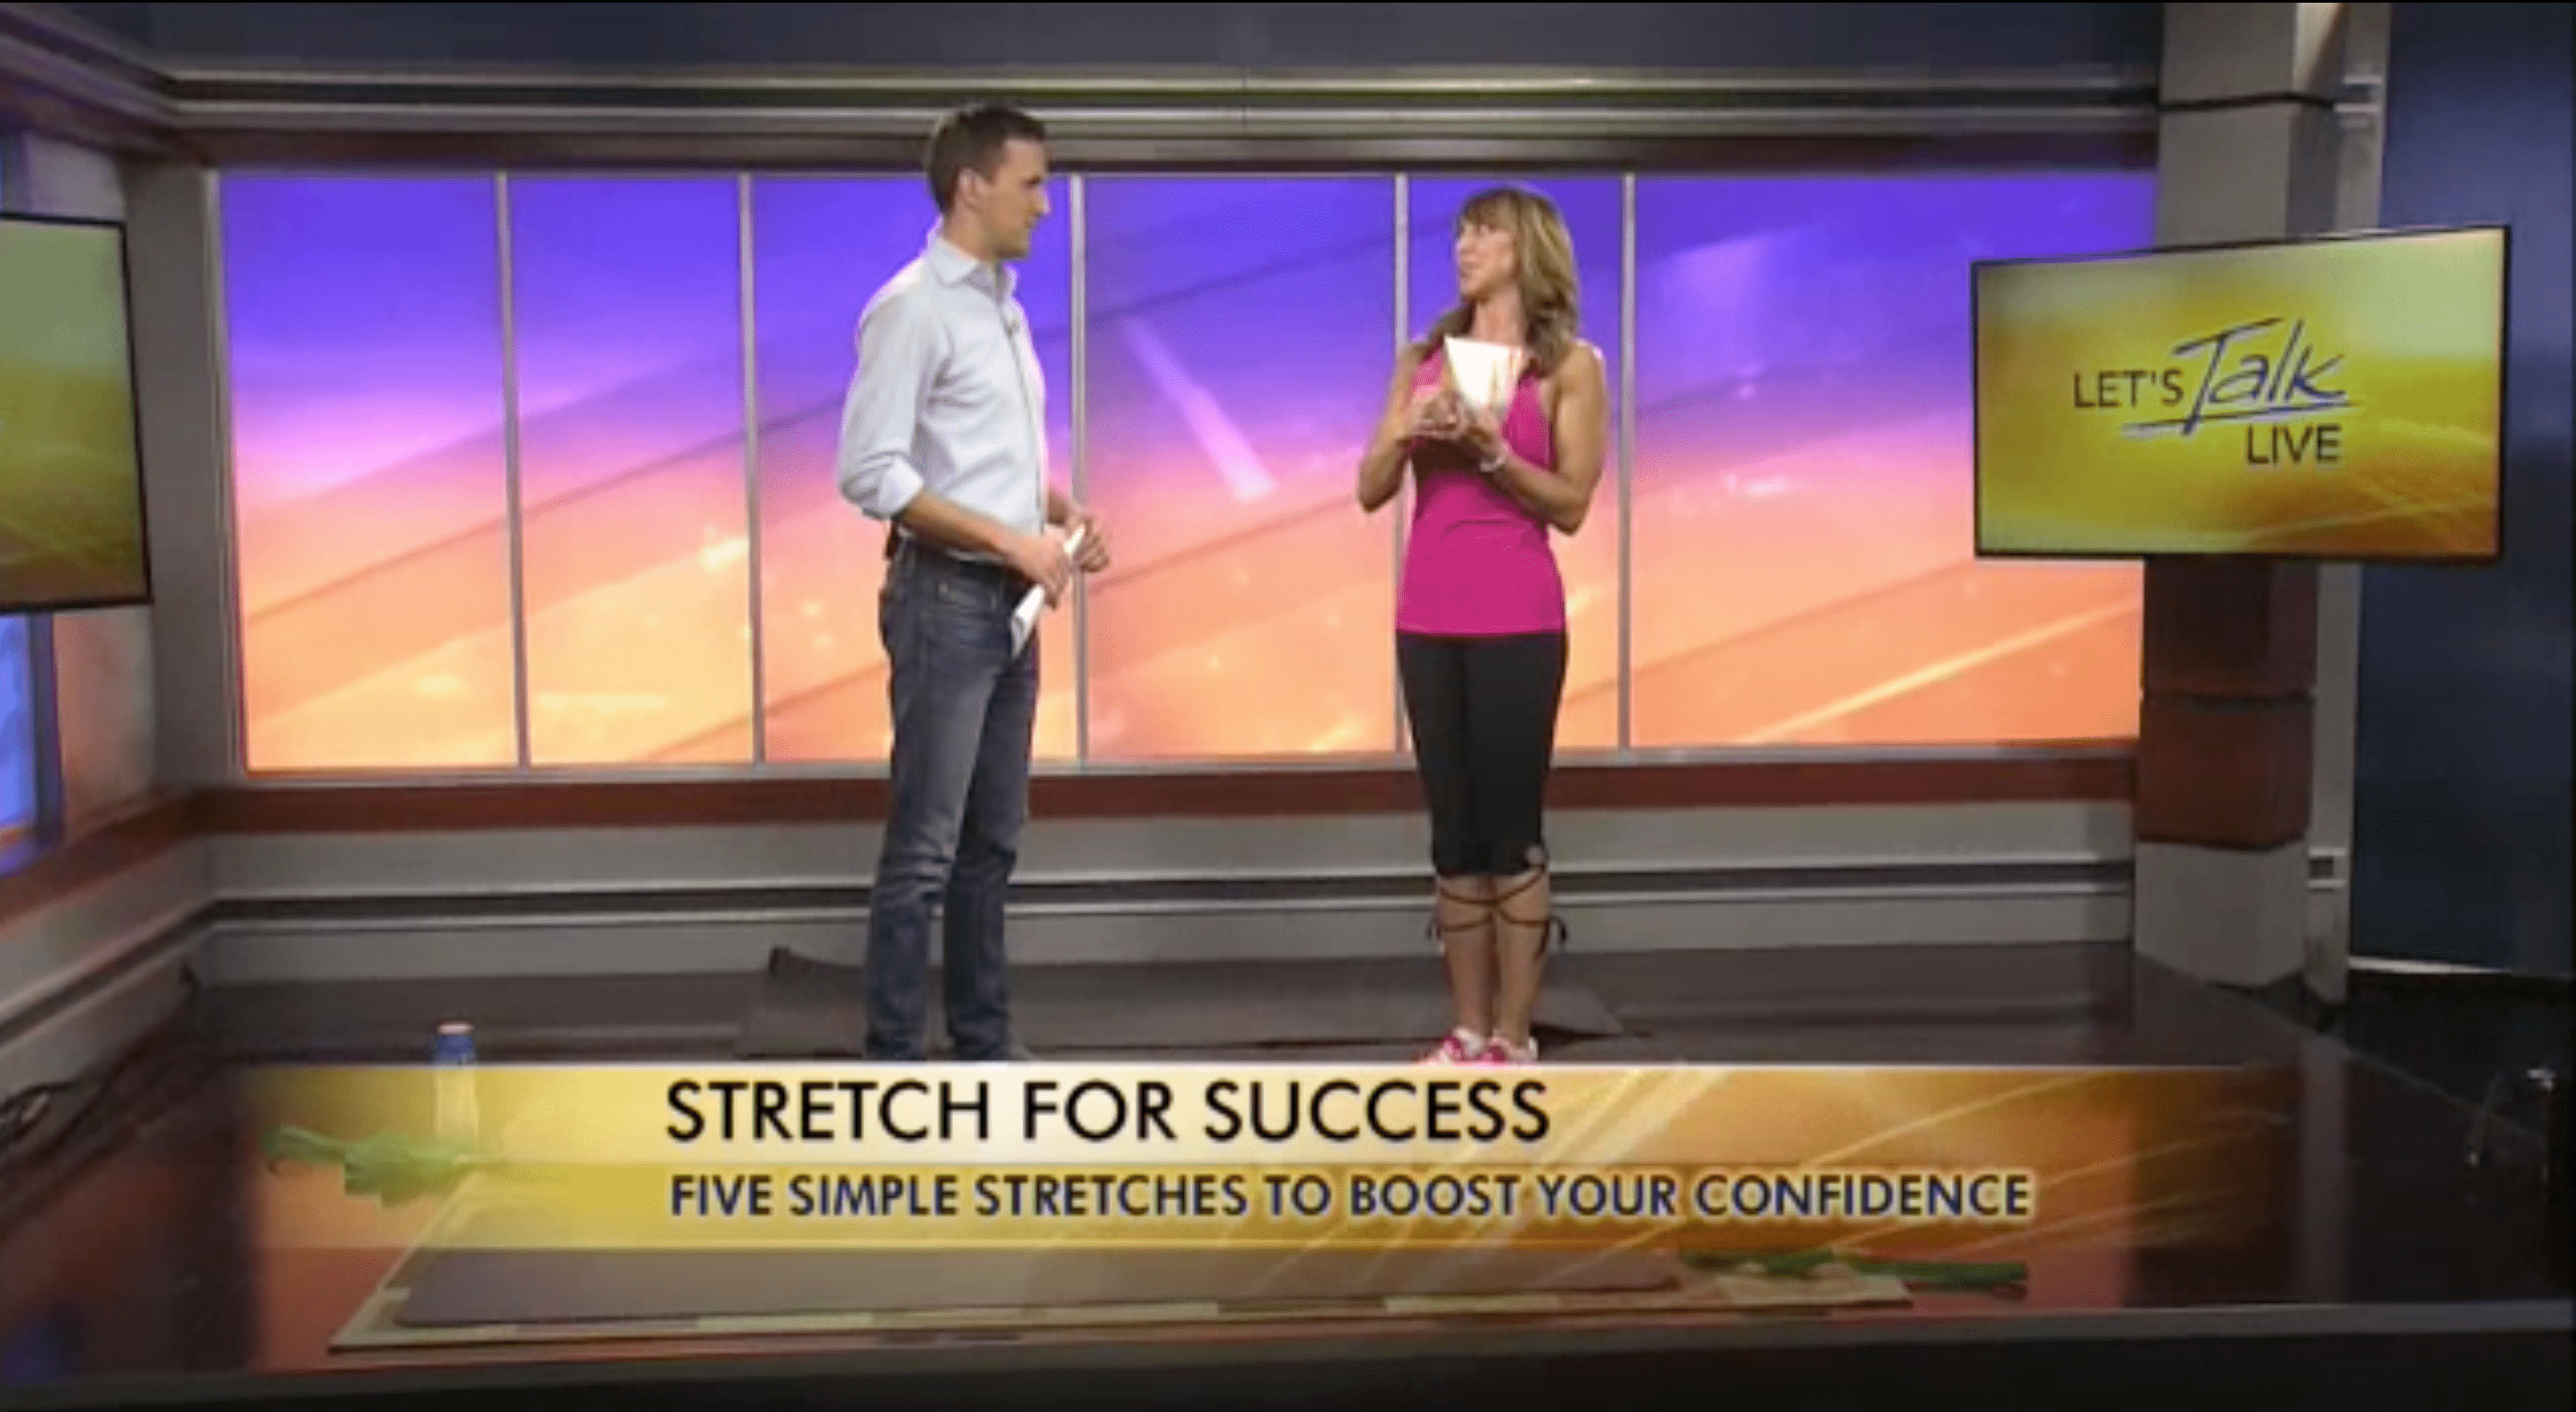 Stretching For Success